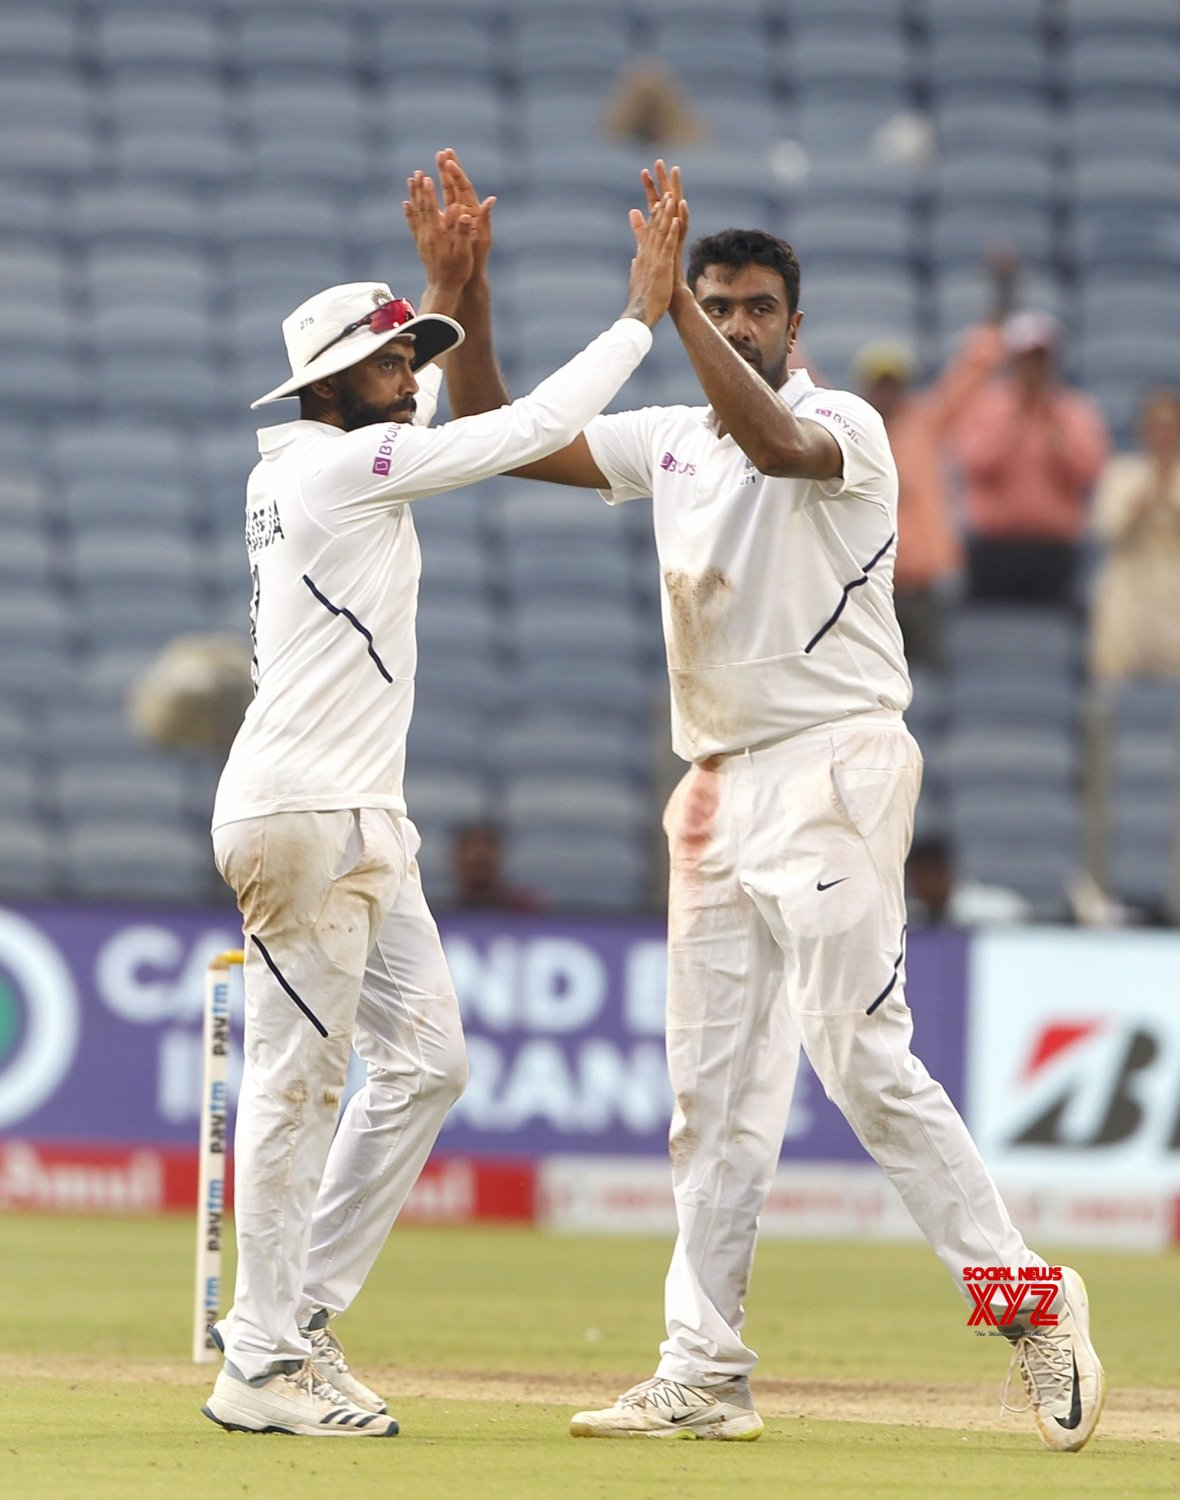 Pune: 2nd Test - India Vs South Africa - Day 3 (Batch - 23) #Gallery